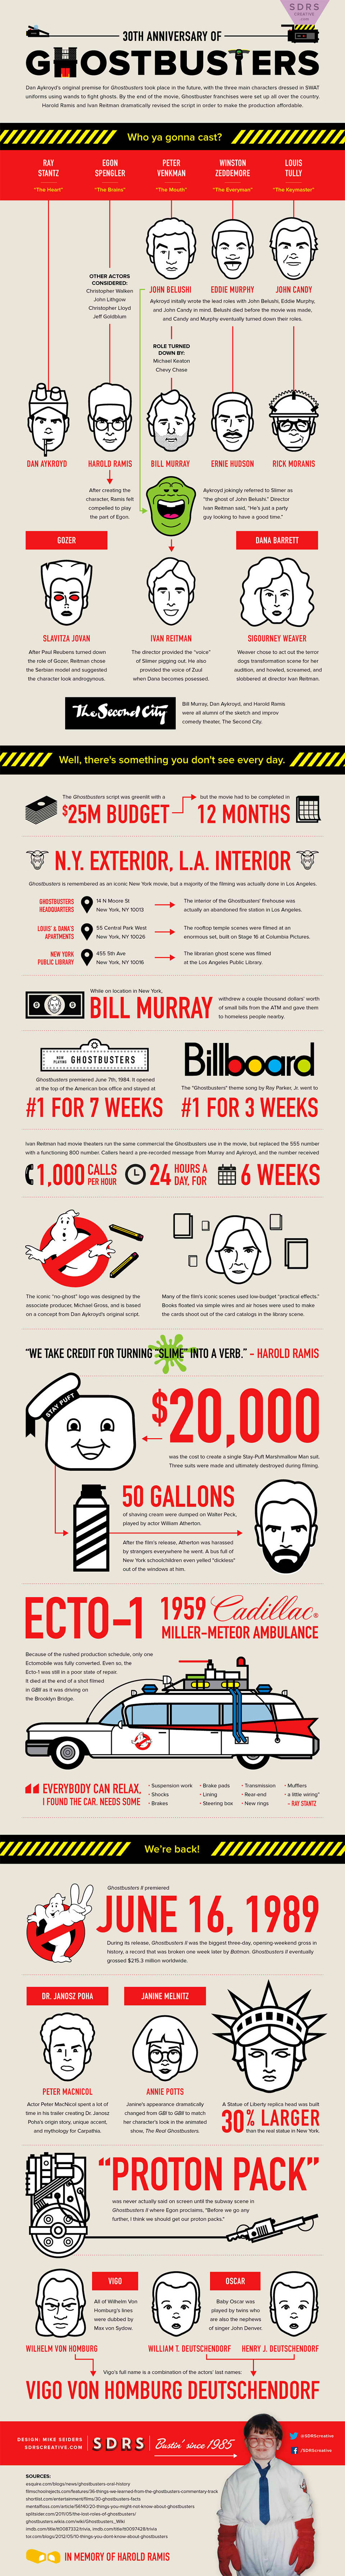 ghostbusters_30_anniversary_infographic_l